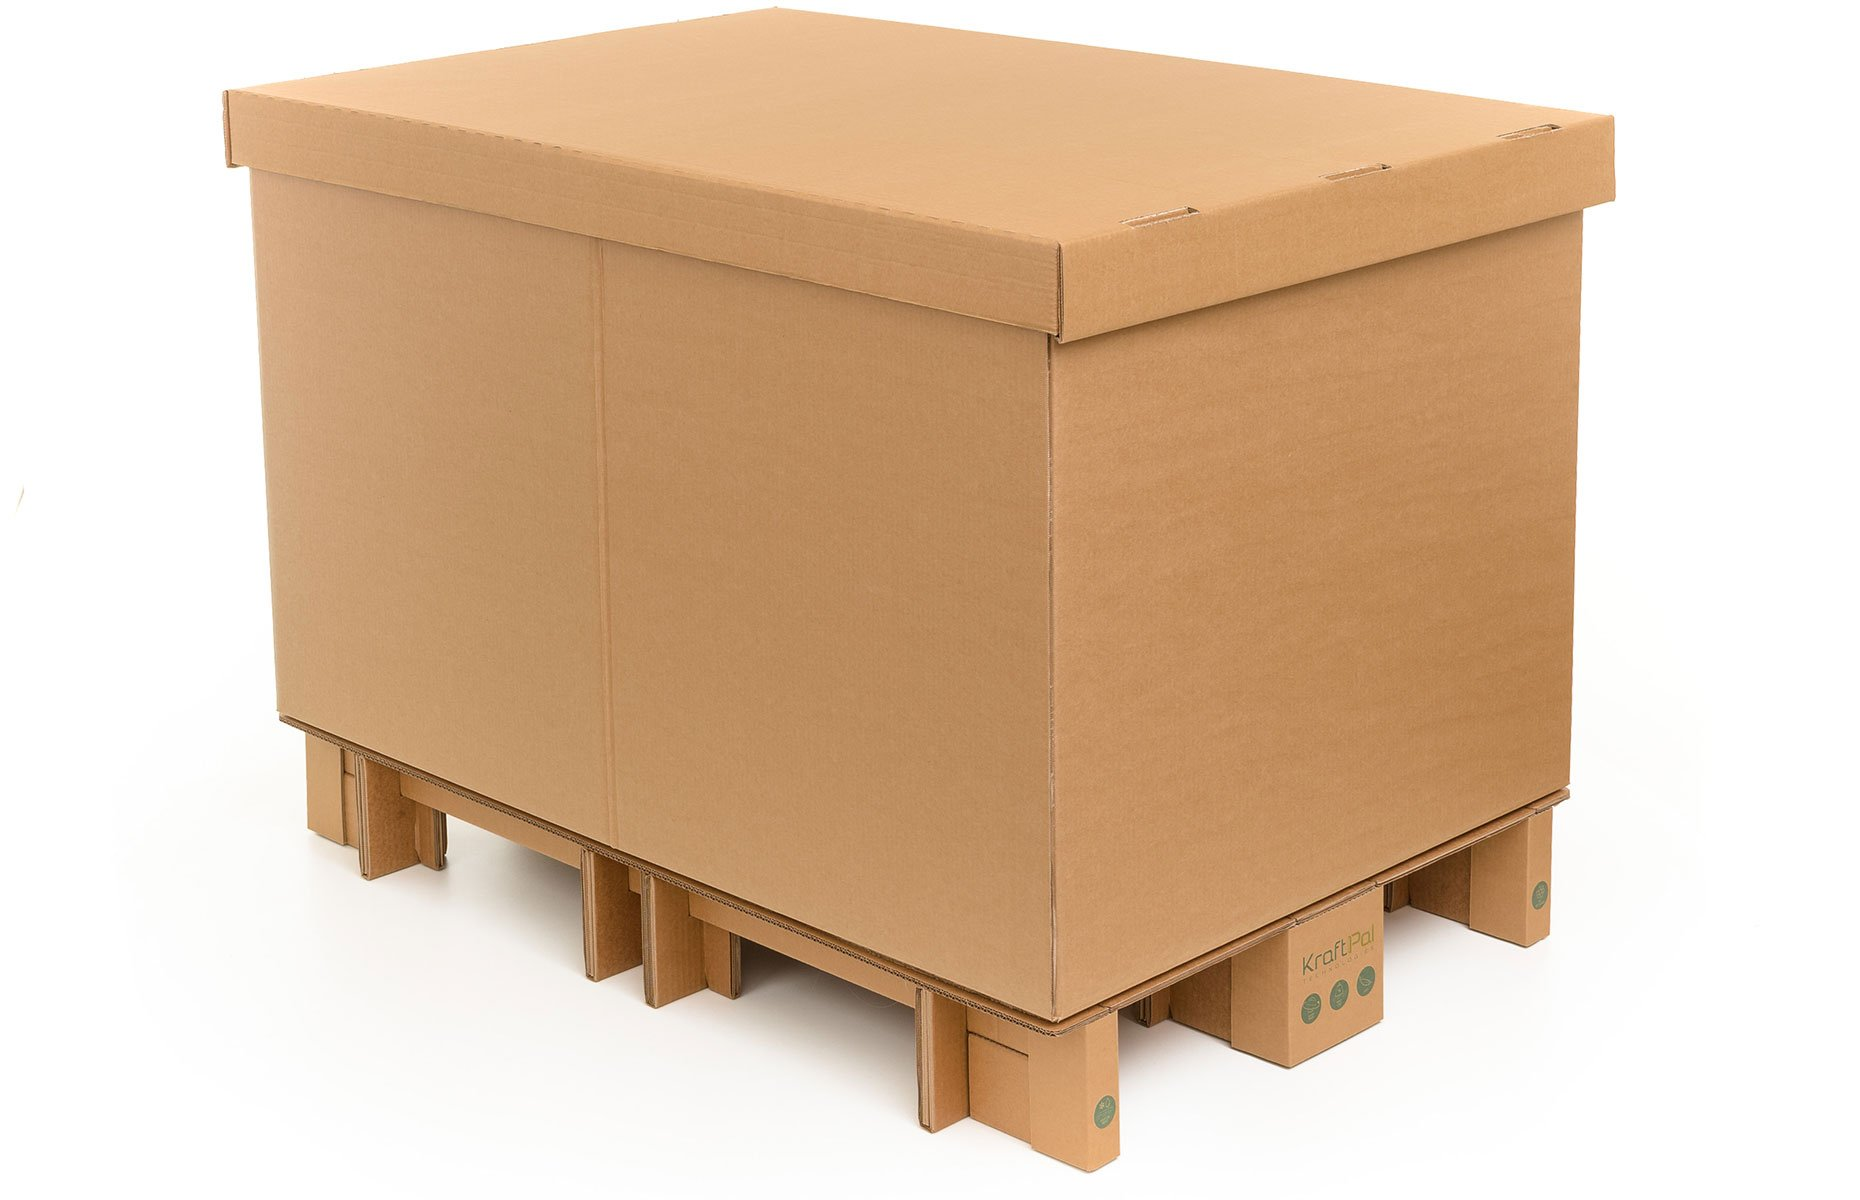 KraftPal-X-Pallet-Integrated-Box.jpg